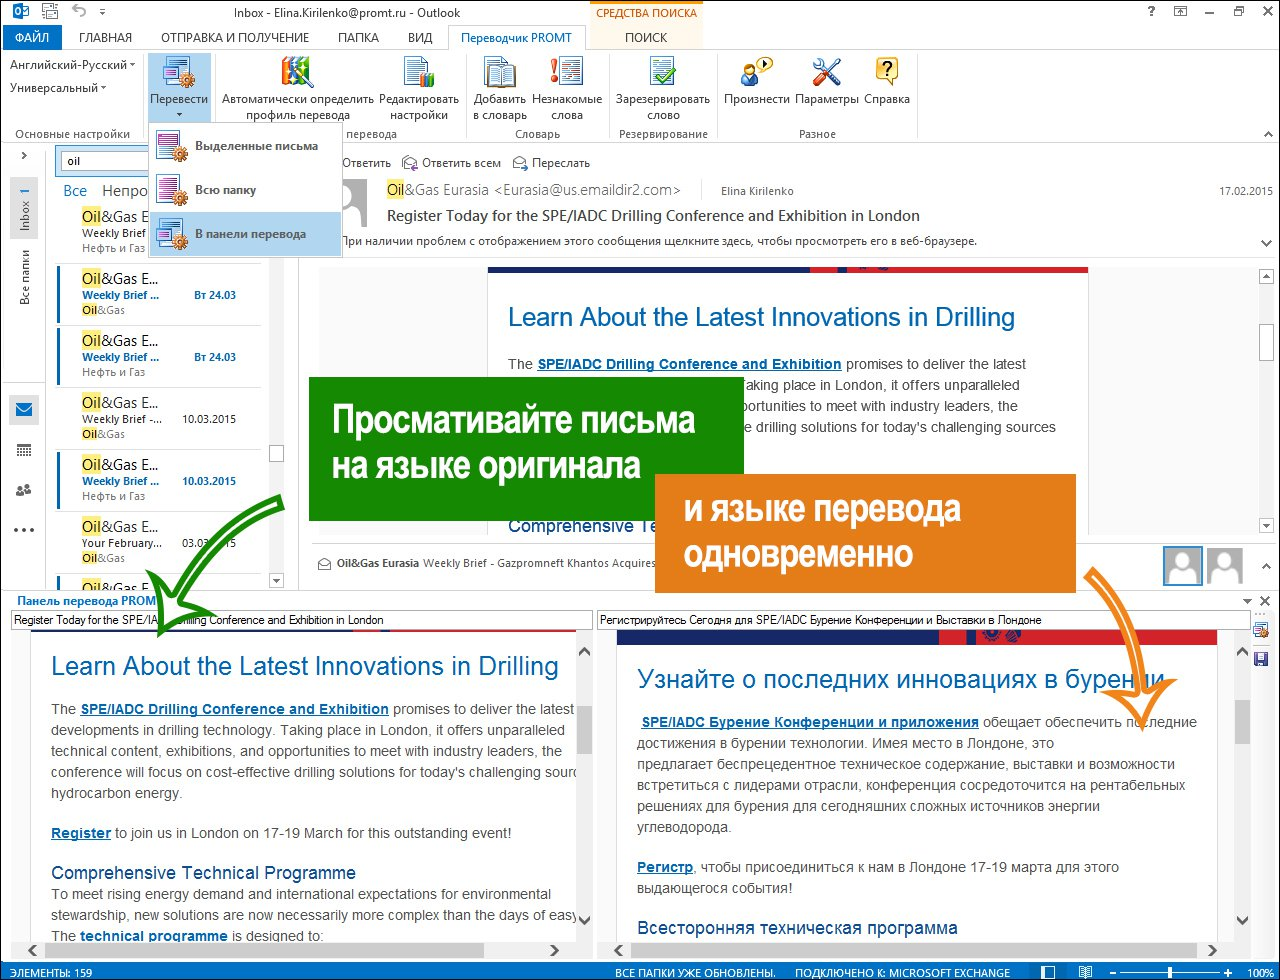 перевод в outlook.jpg